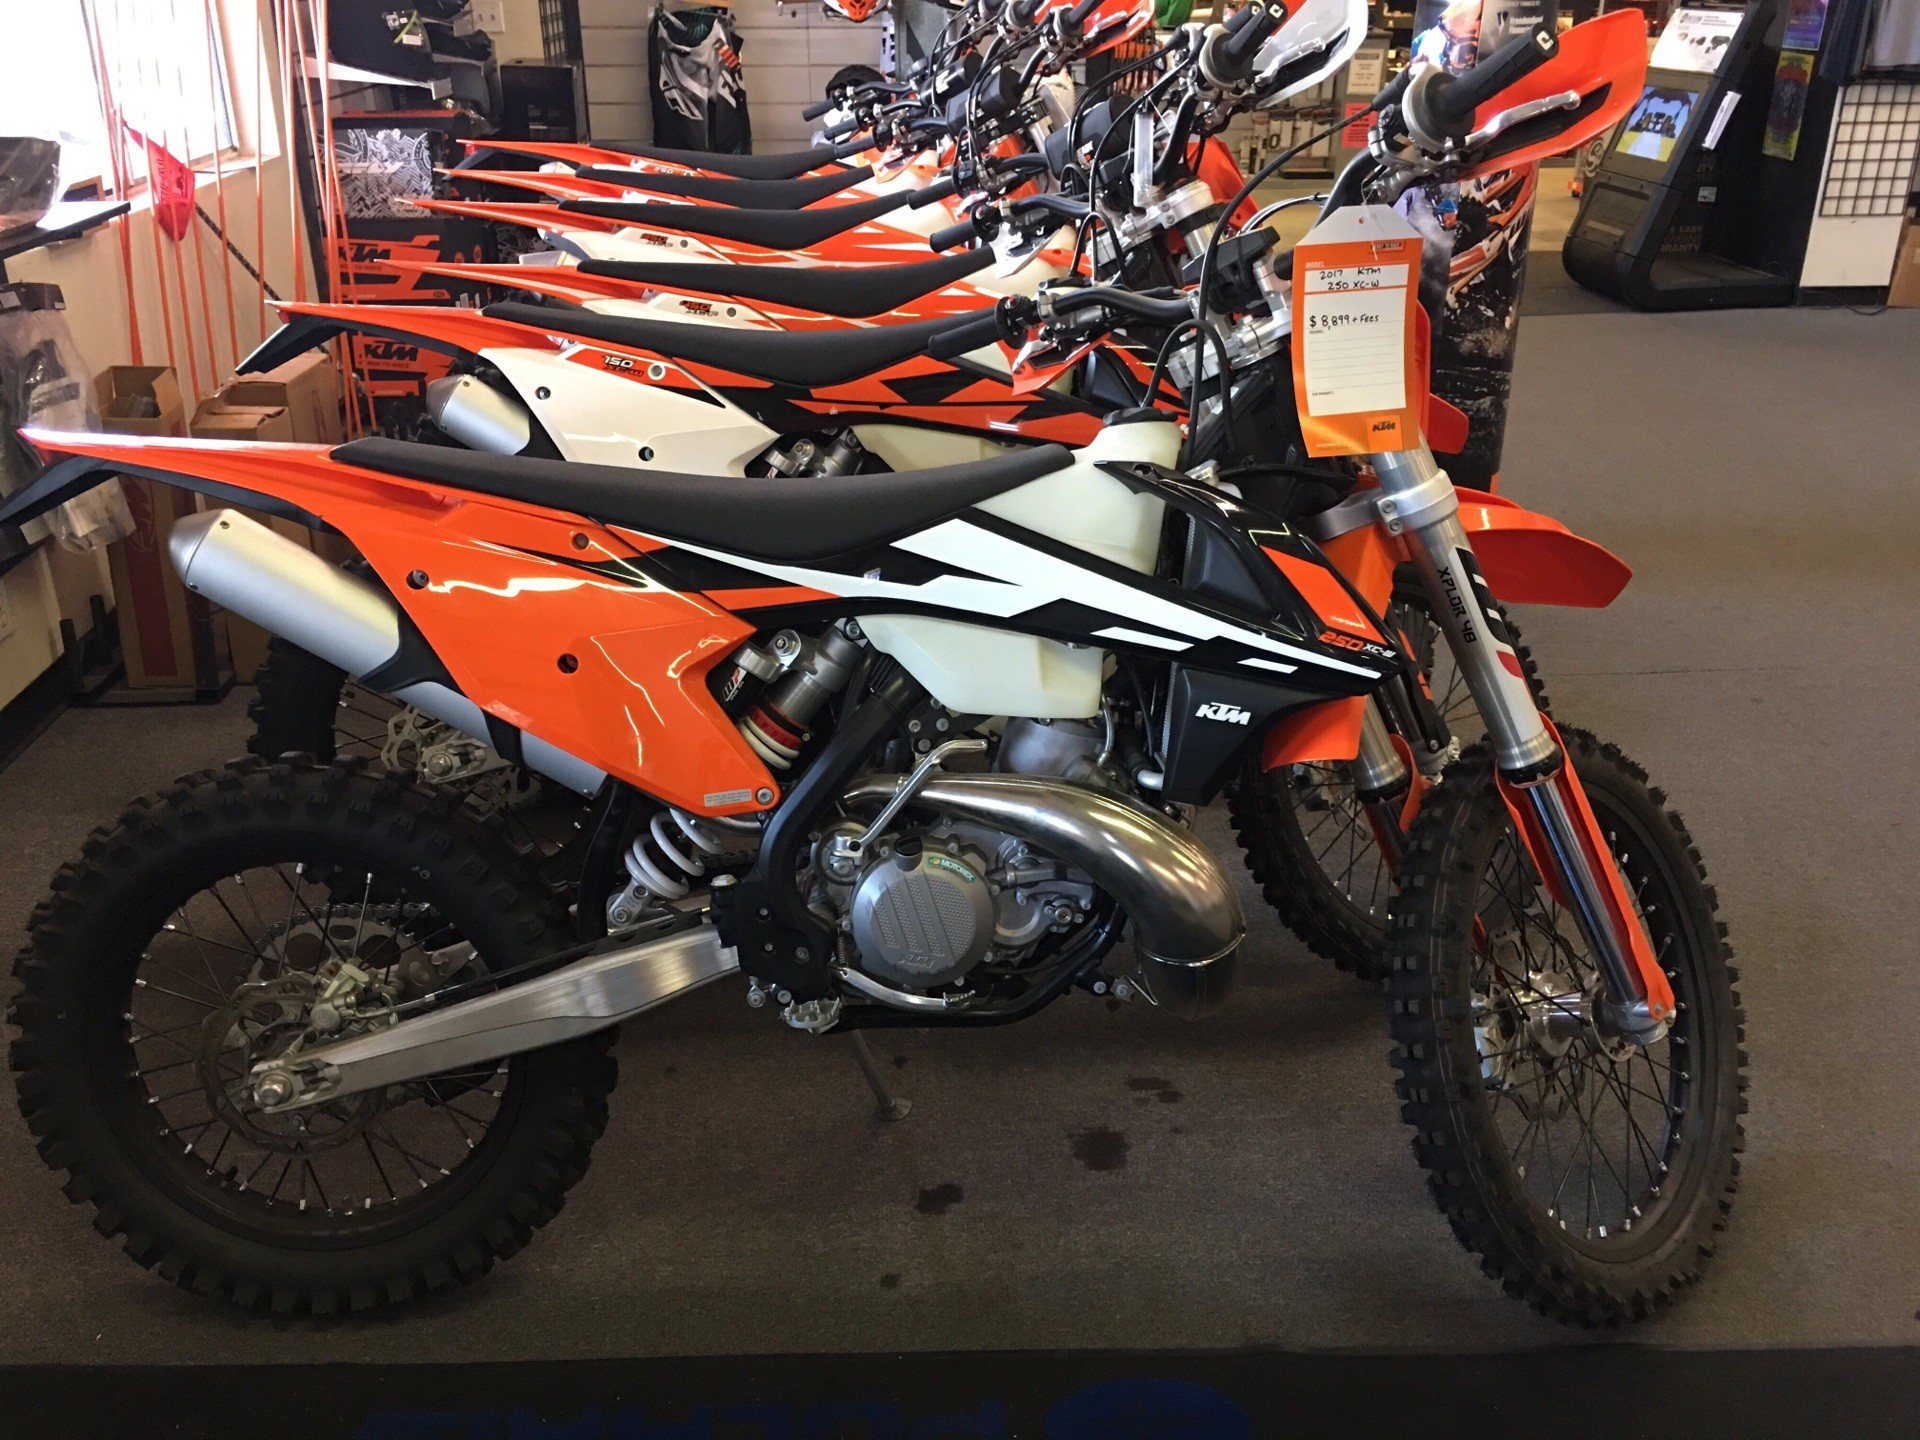 New 2017 ktm 250 xc w motorcycles in paso robles ca stock number 2017 ktm 250 xc w in paso robles california ccuart Gallery